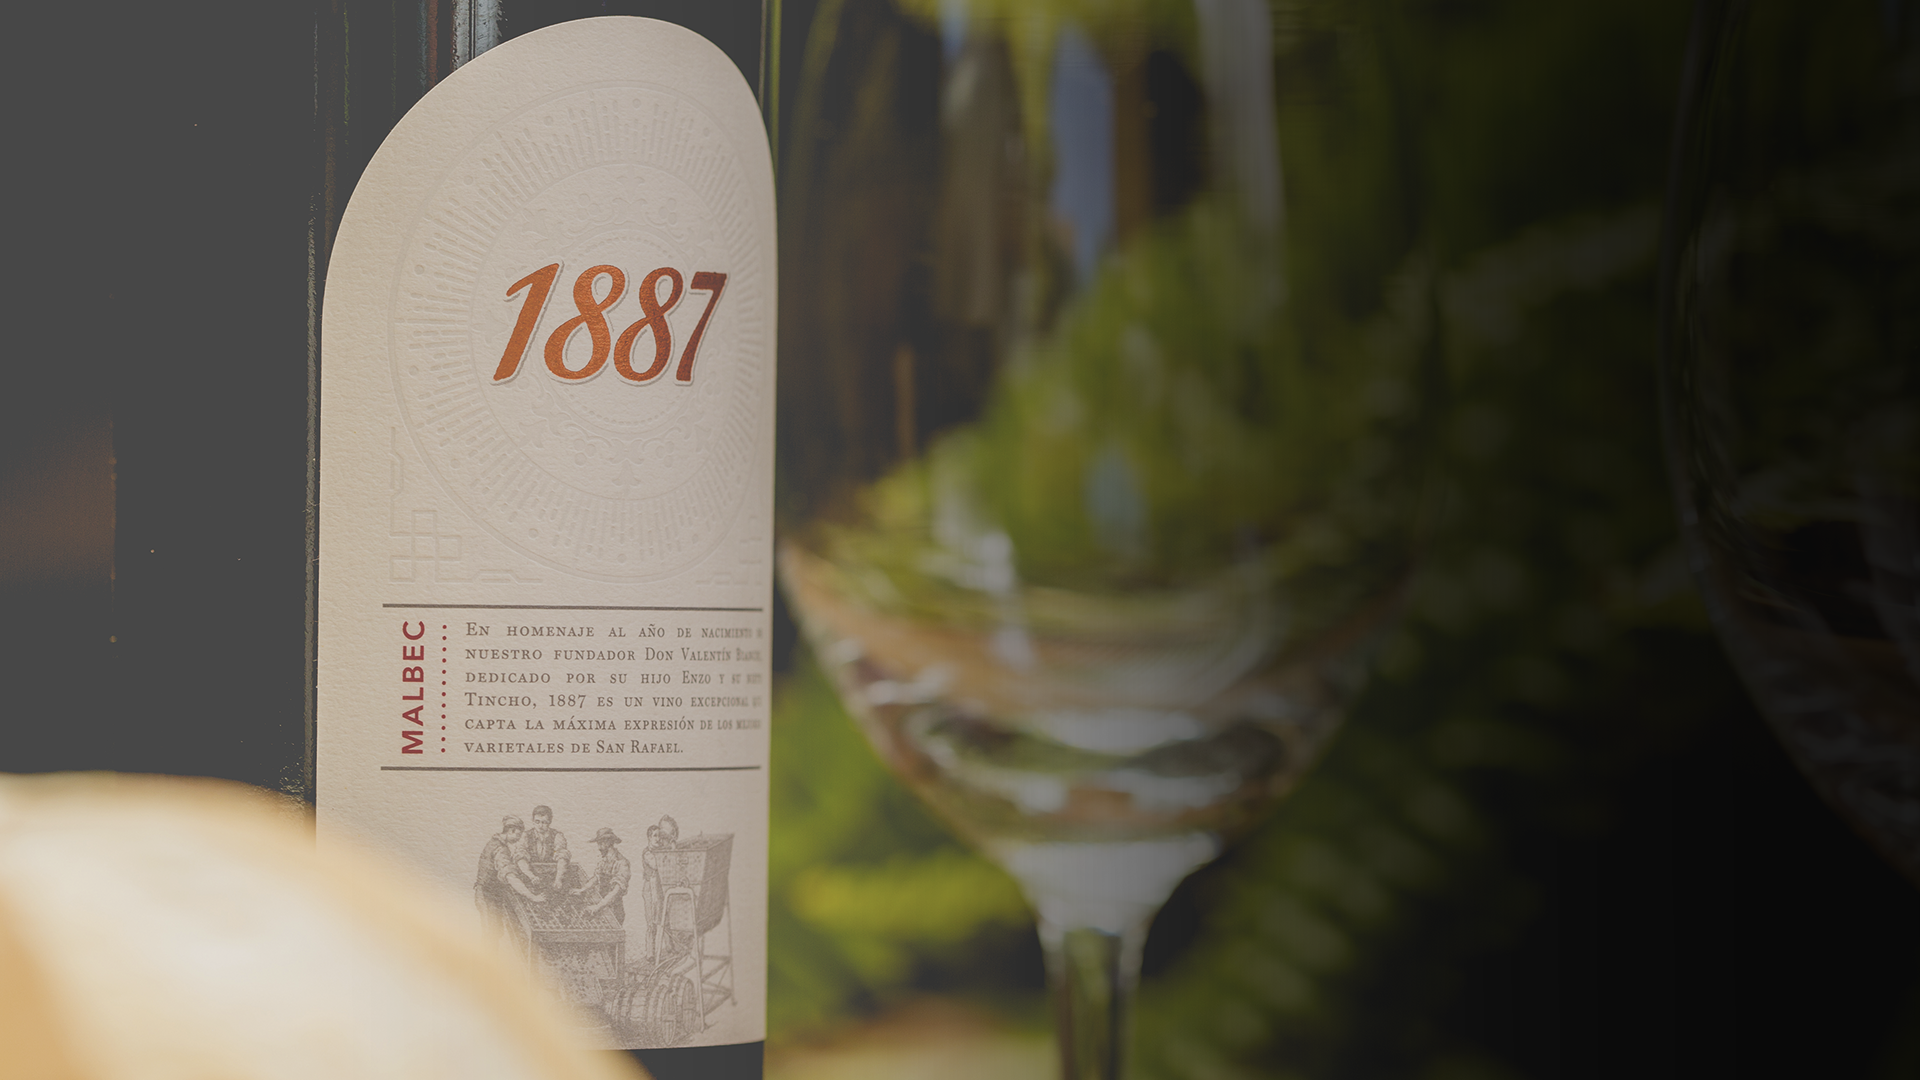 1887 Malbec bottle